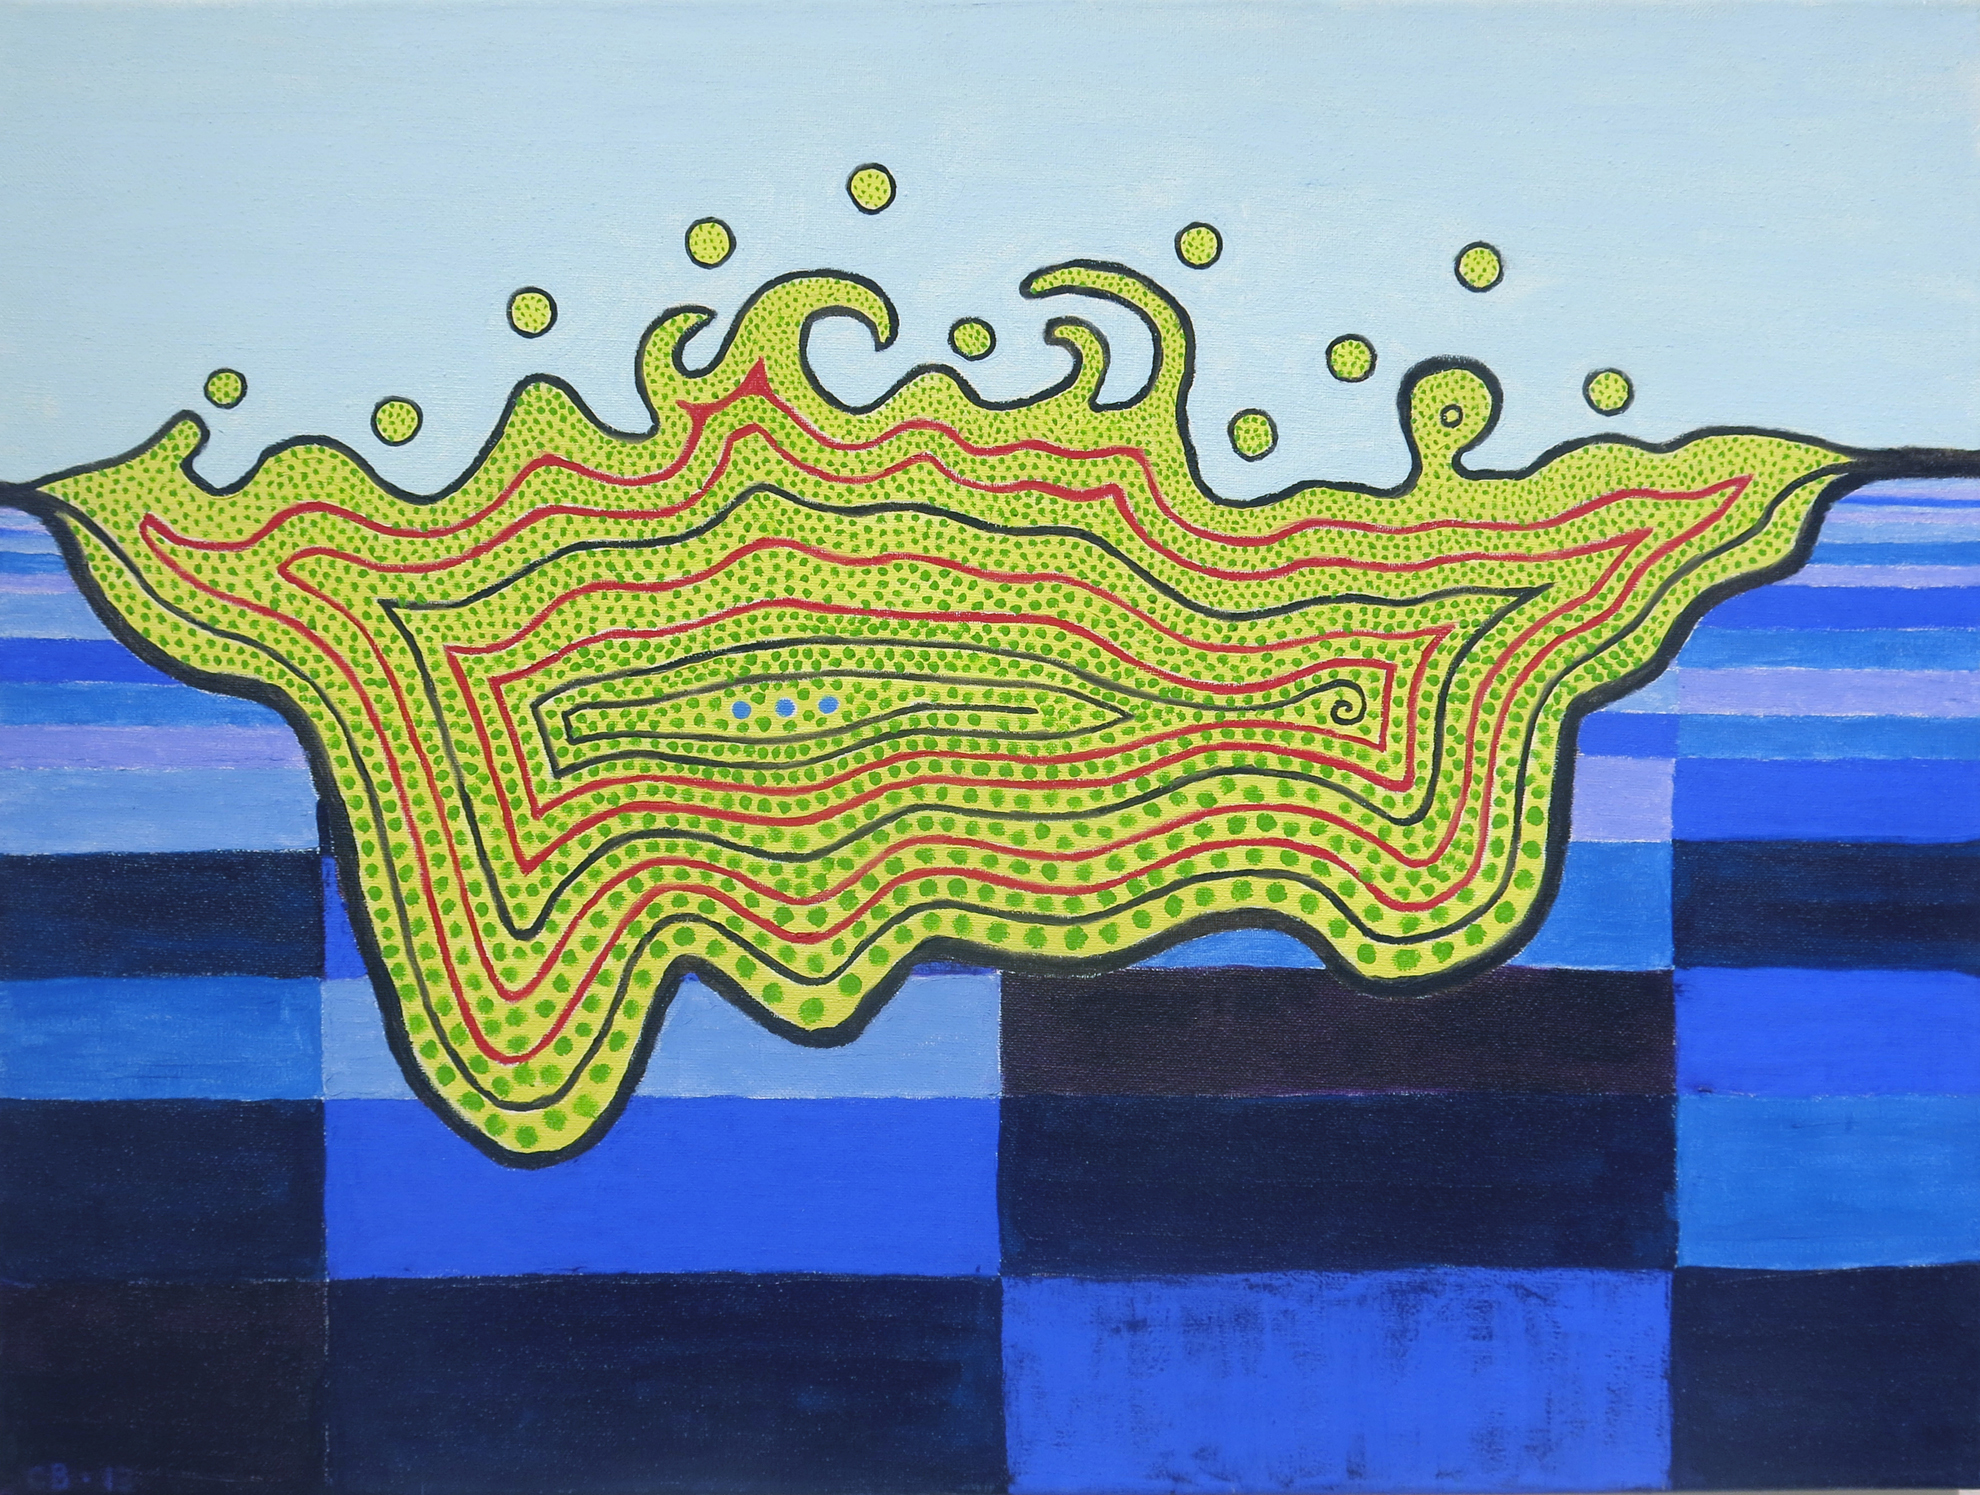 Chuck Boyce,  Floating Island,  2012, oil on canvas, 24h x 18w in.